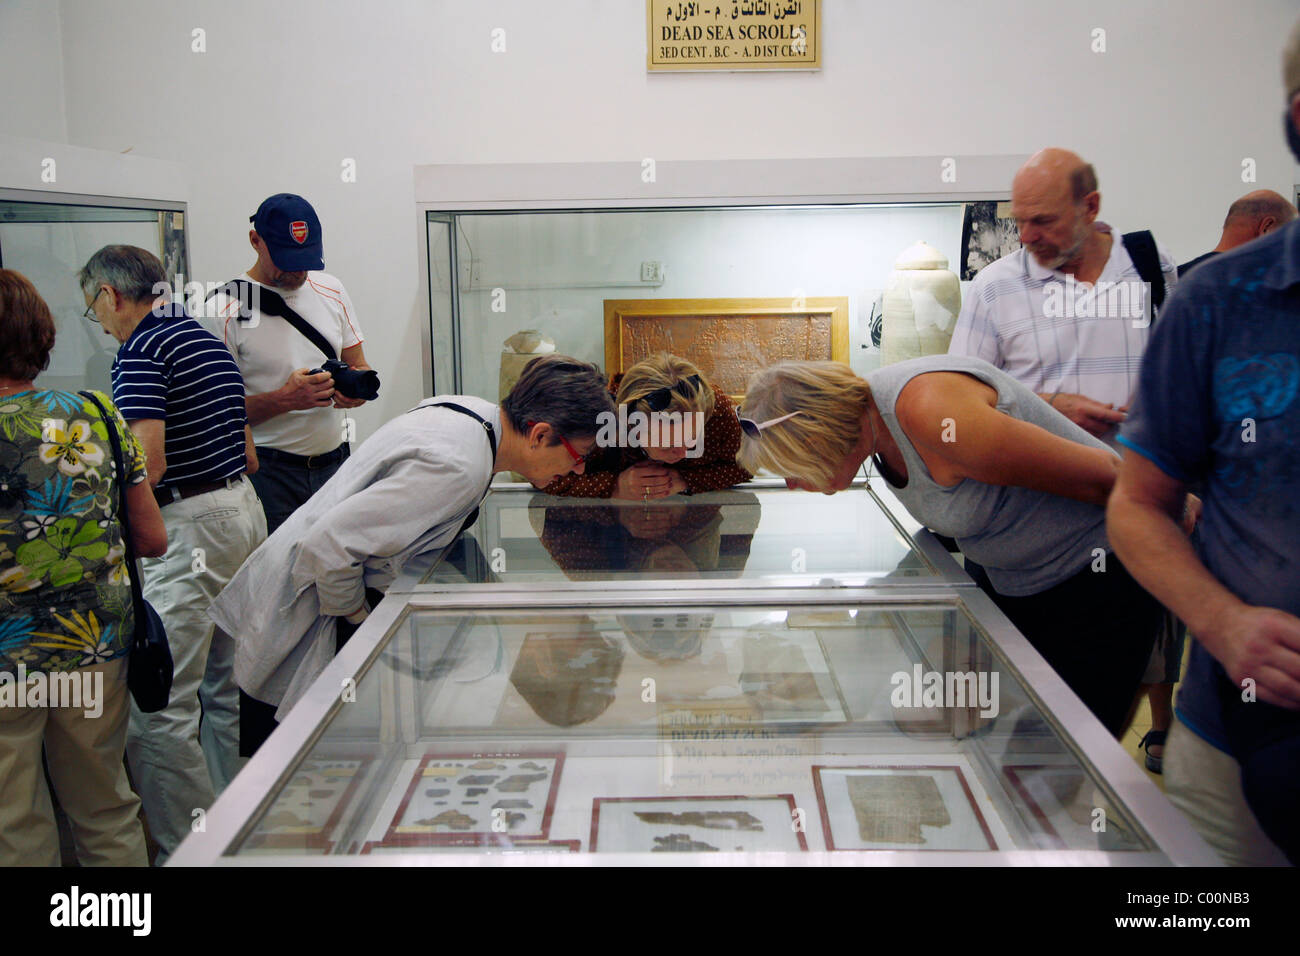 Tourists looking at the Dead Sea Scrolls at the National Archeological Museum in the Citadel, Amman, Jordan. - Stock Image